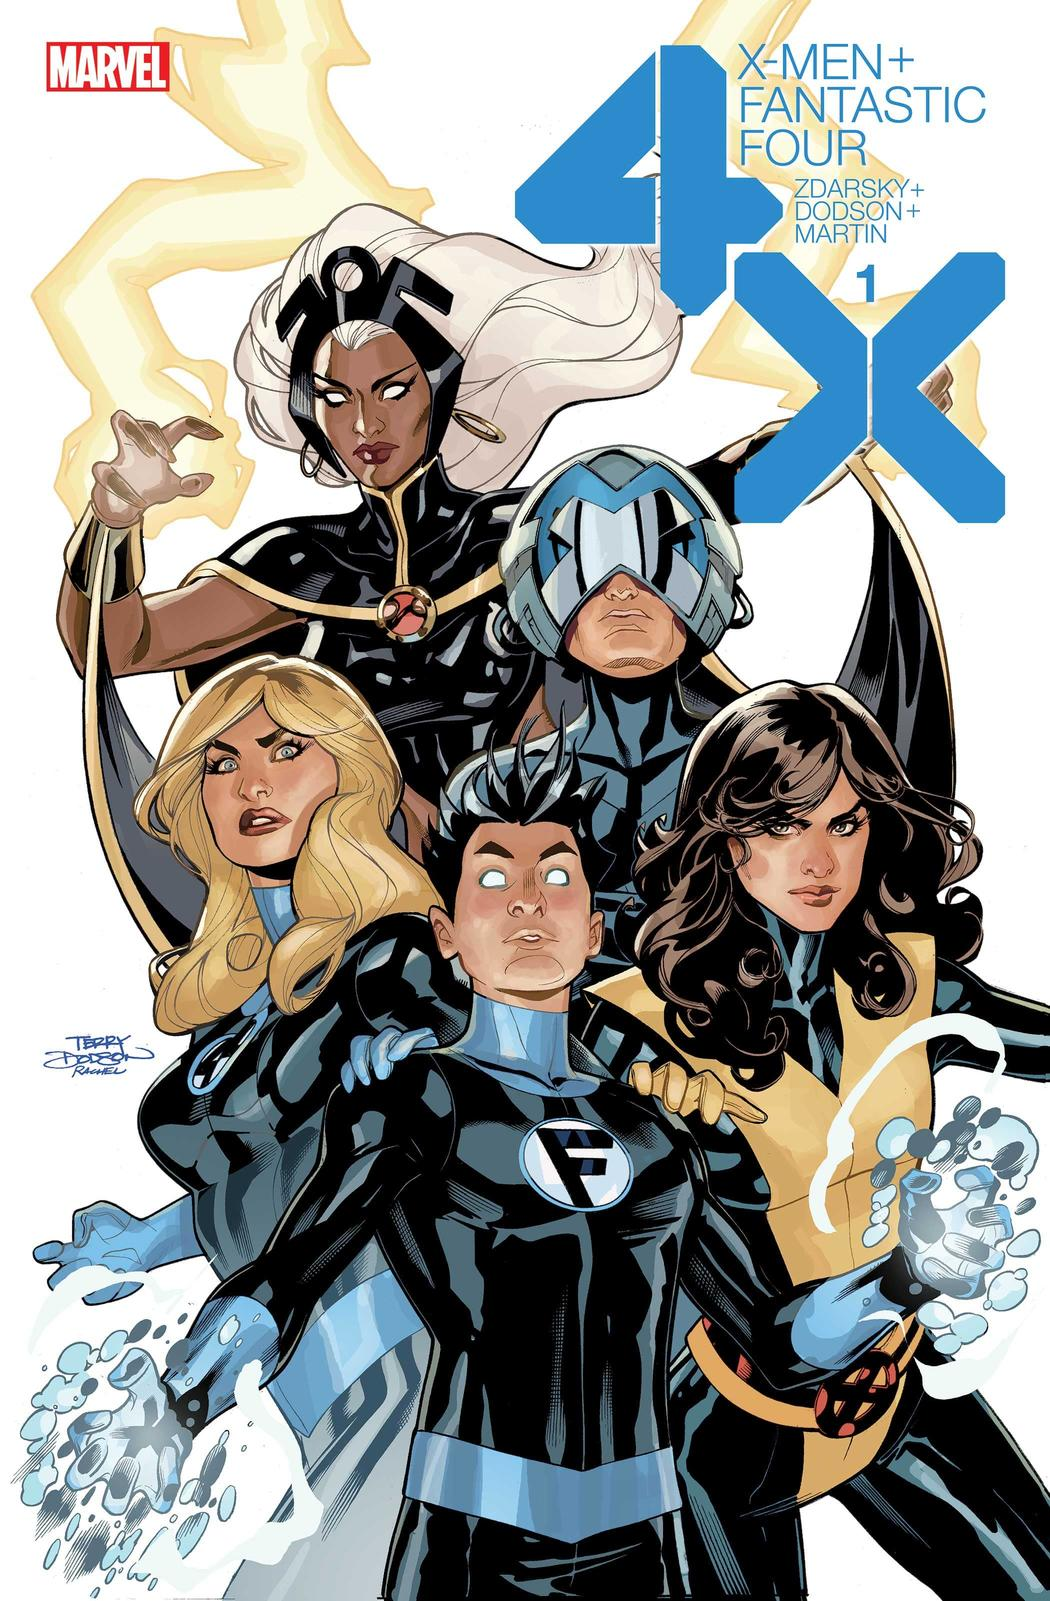 X-MEN/FANTASTIC FOUR #1 cover by Terry Dodson